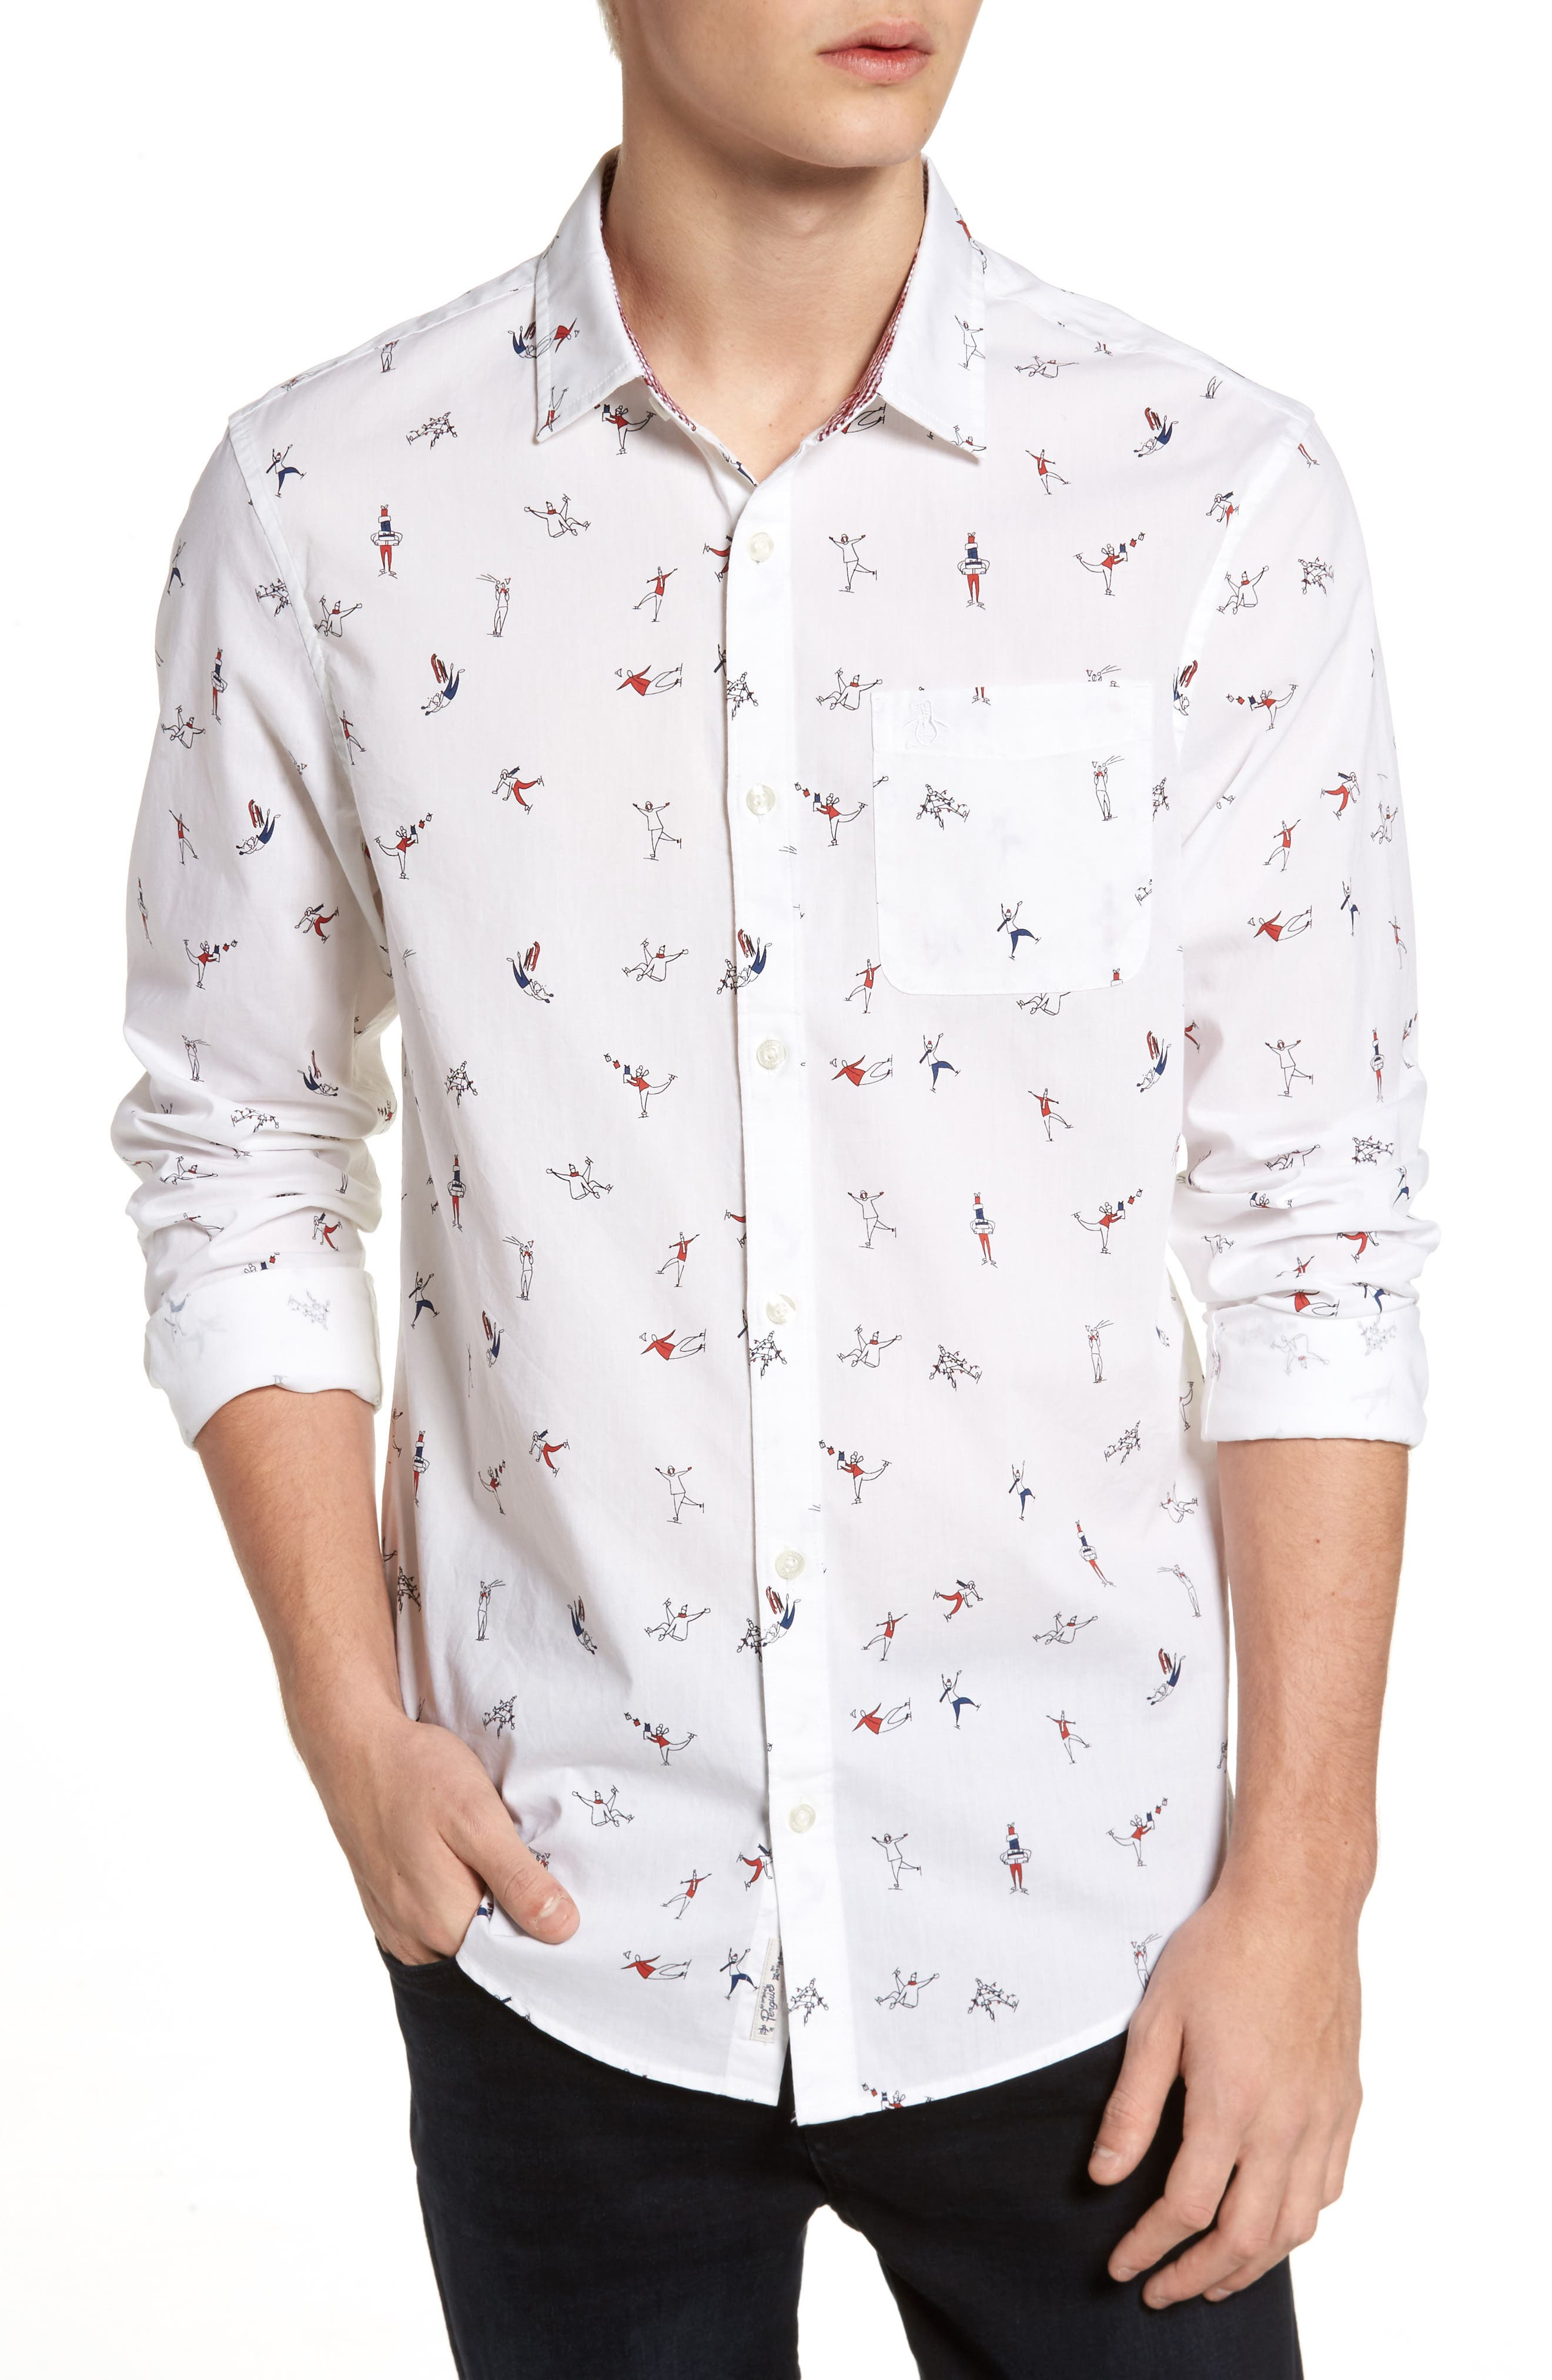 Clumsy Skaters Poplin Shirt,                         Main,                         color, Bright White